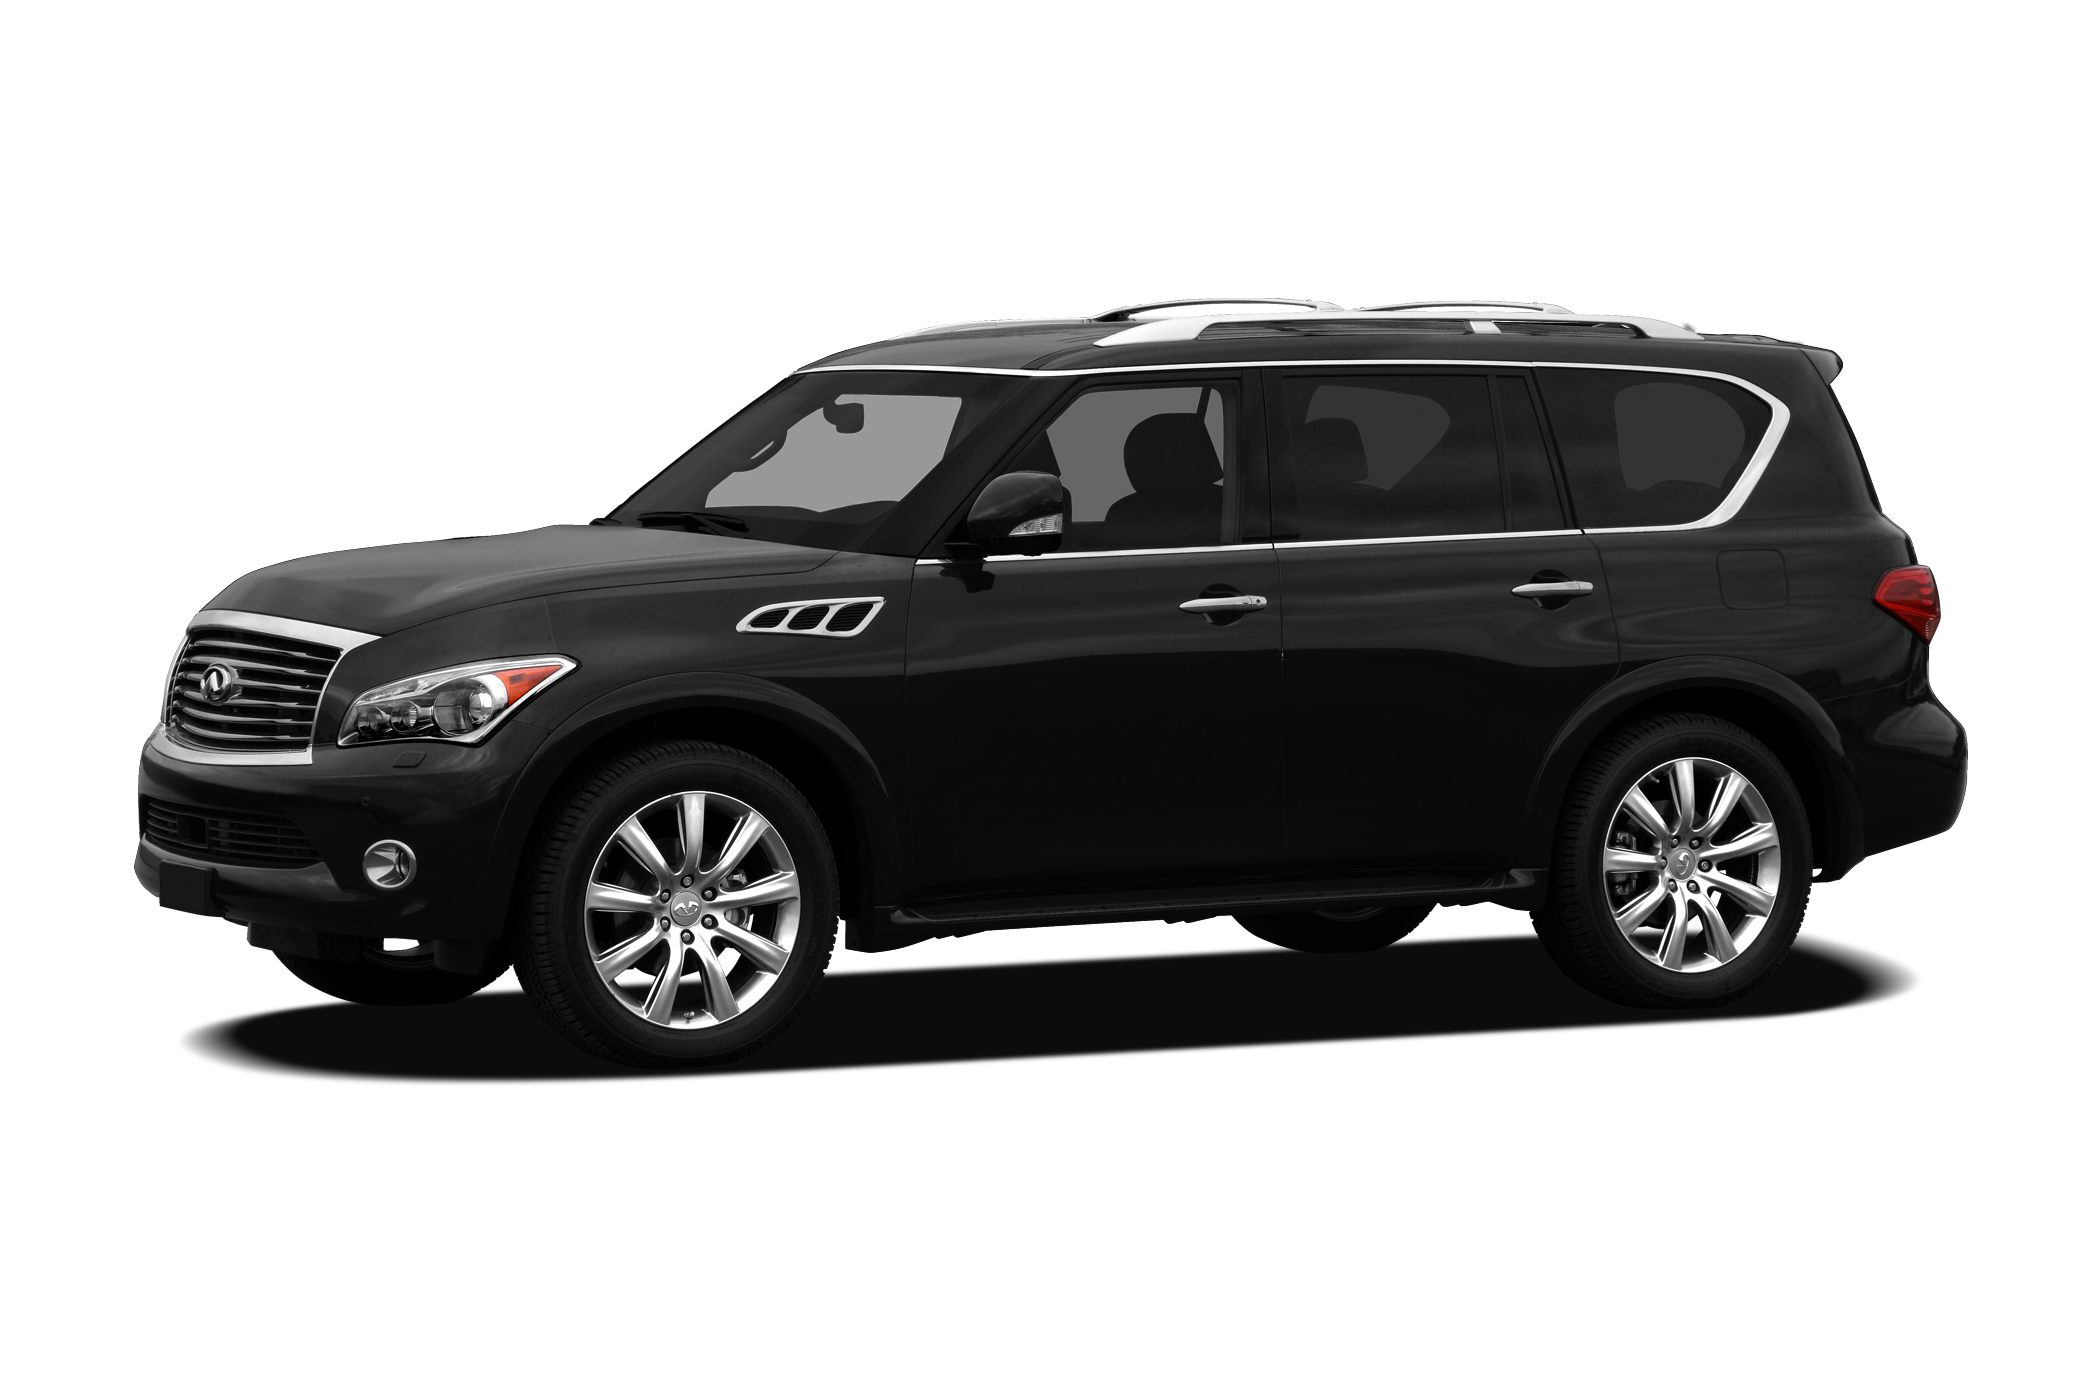 2011 Infiniti QX56 Base SUV for sale in Jackson for $46,995 with 54,463 miles